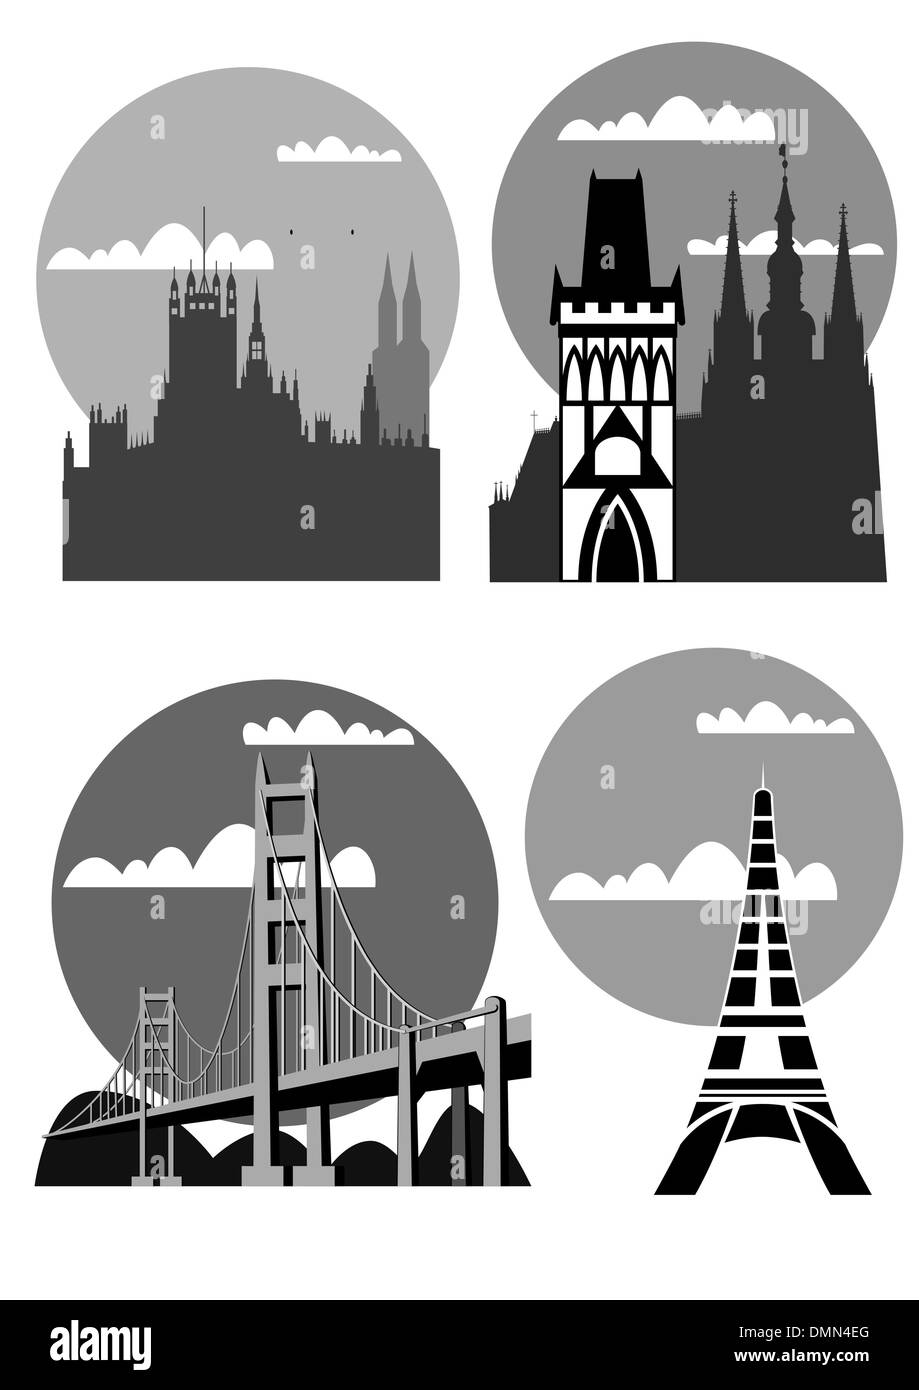 famous cities and places - vector - Stock Image